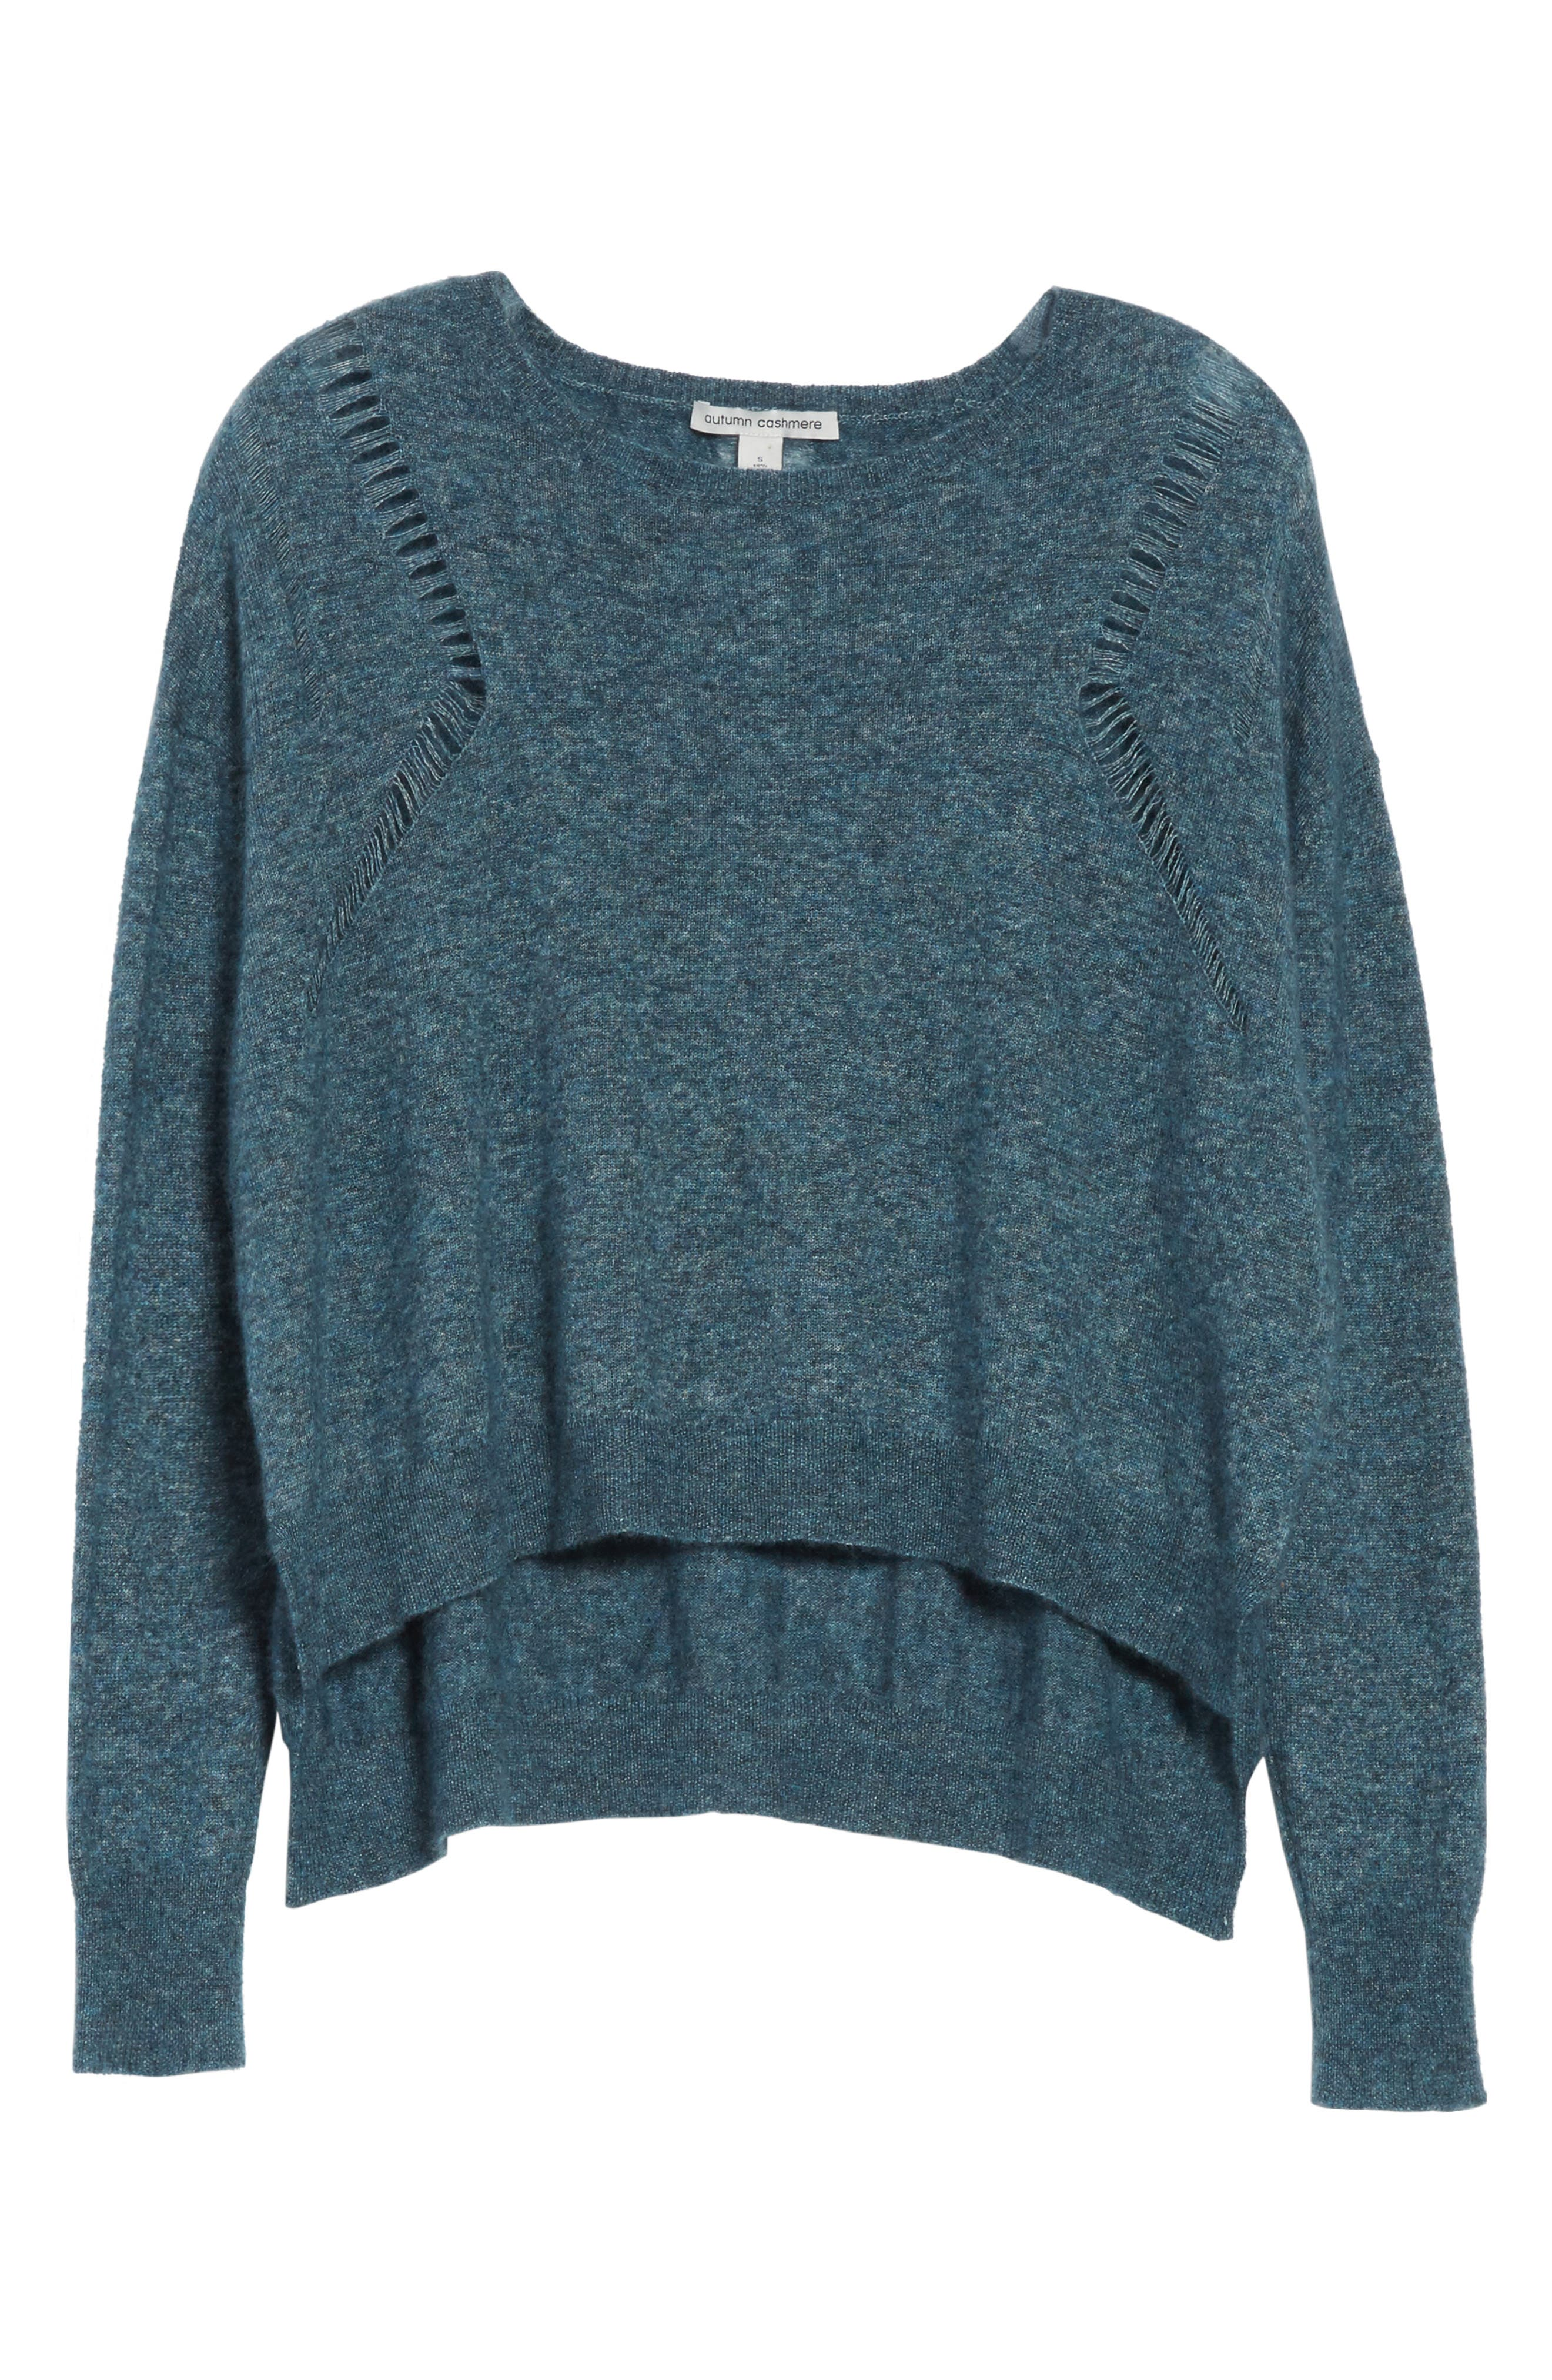 Boxy Ladder Stitch Cashmere & Silk Sweater,                             Alternate thumbnail 6, color,                             Marlin